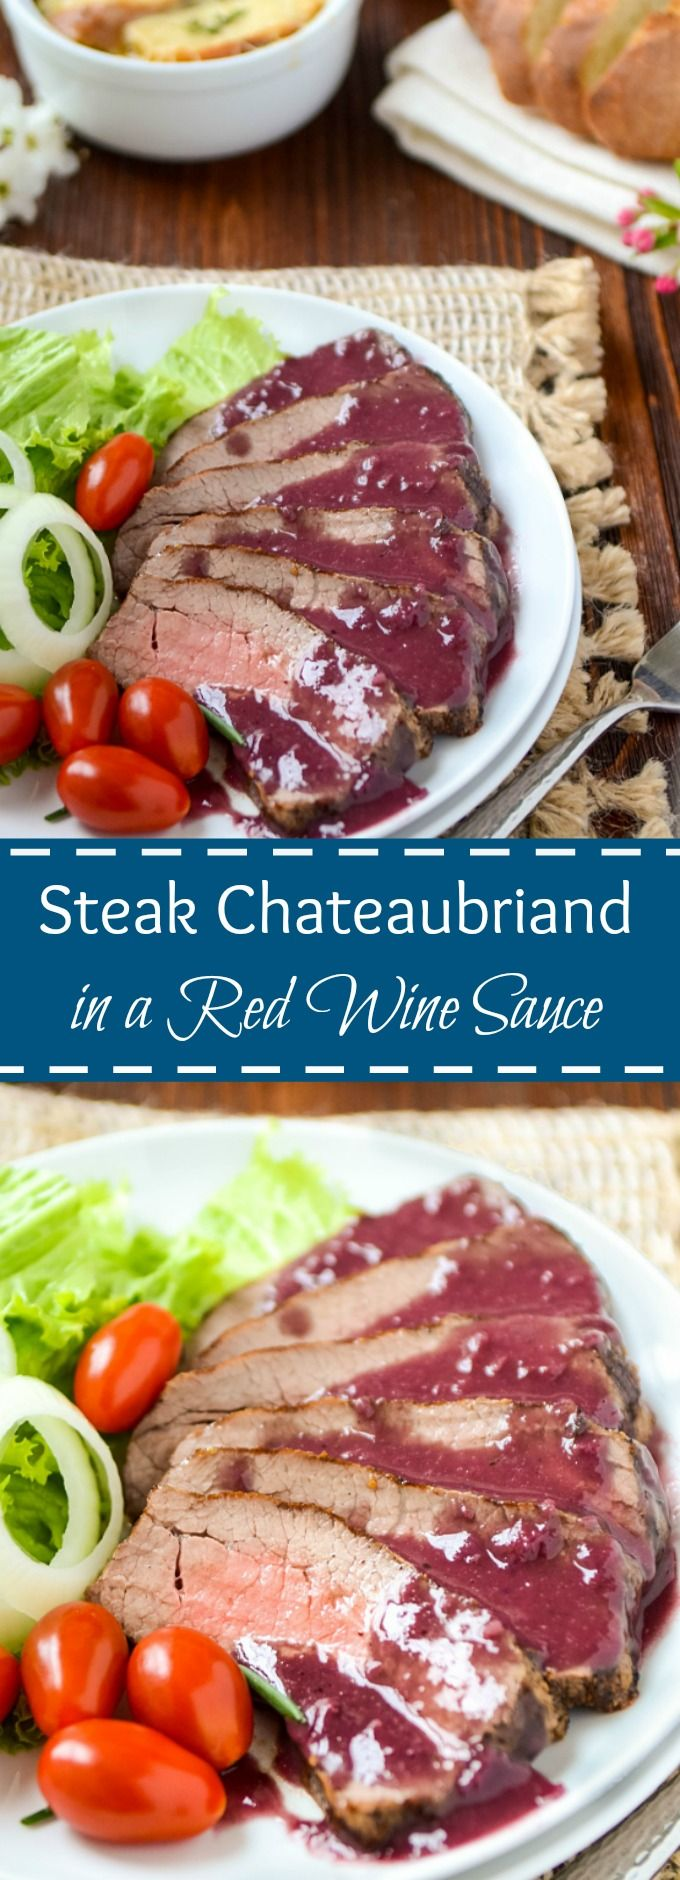 Chateaubriand Recipe | Chateaubriand In A Red Wine Sauce | Steak Chateaubriand | Chateaubriand Beef Tenderloin